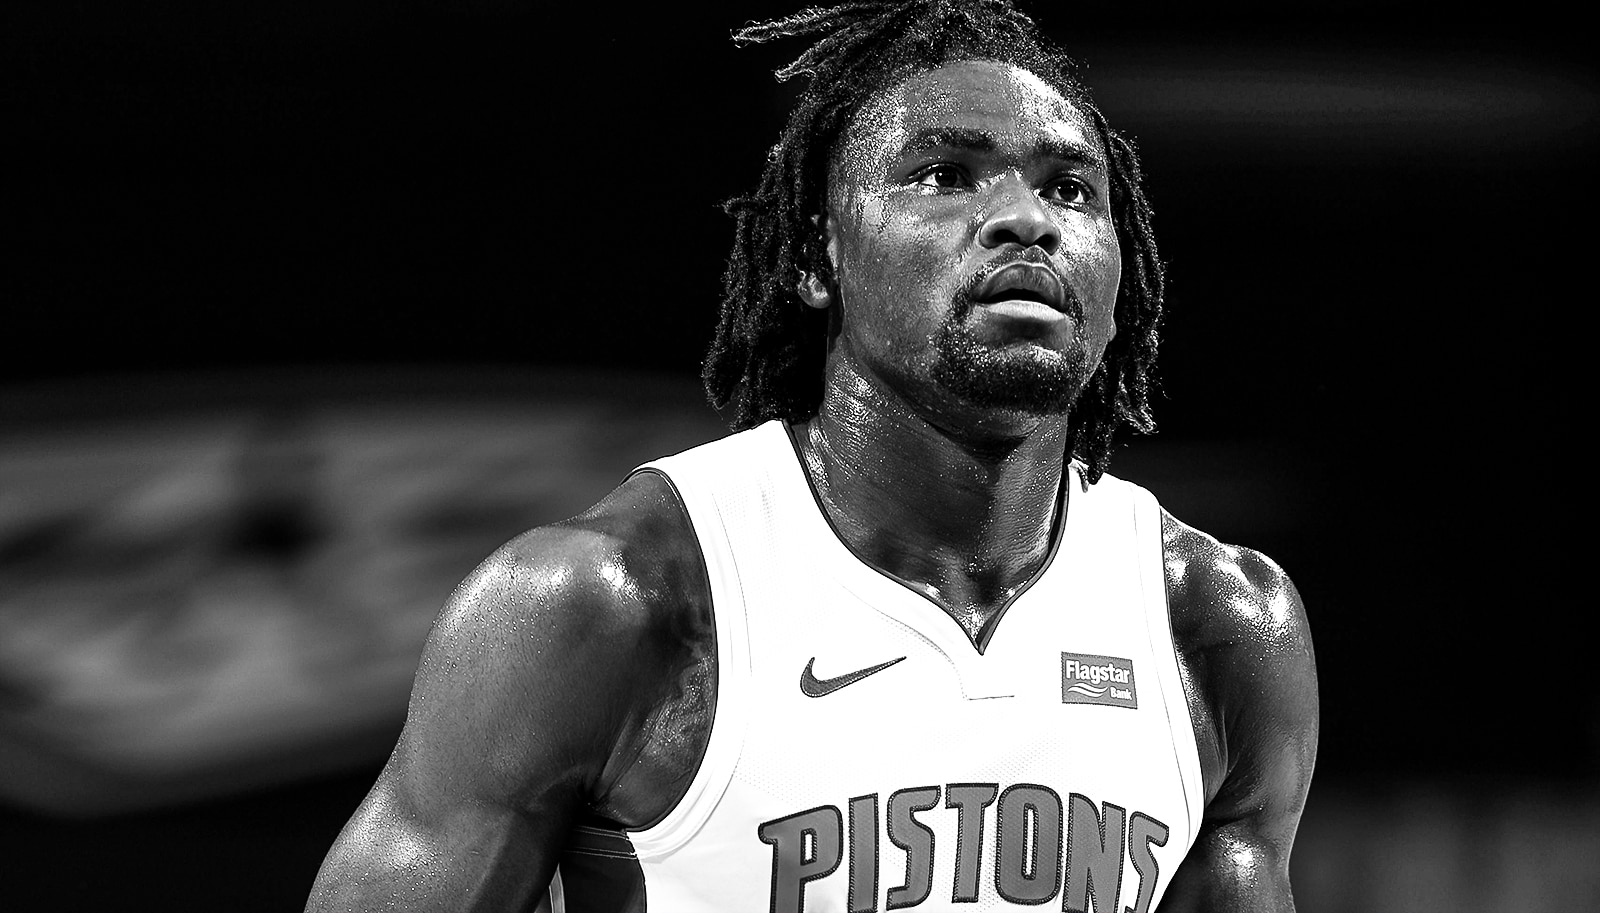 Hes so big and so strong  Pistons rookie Stewart learning how to put his gifts to use on defensive end